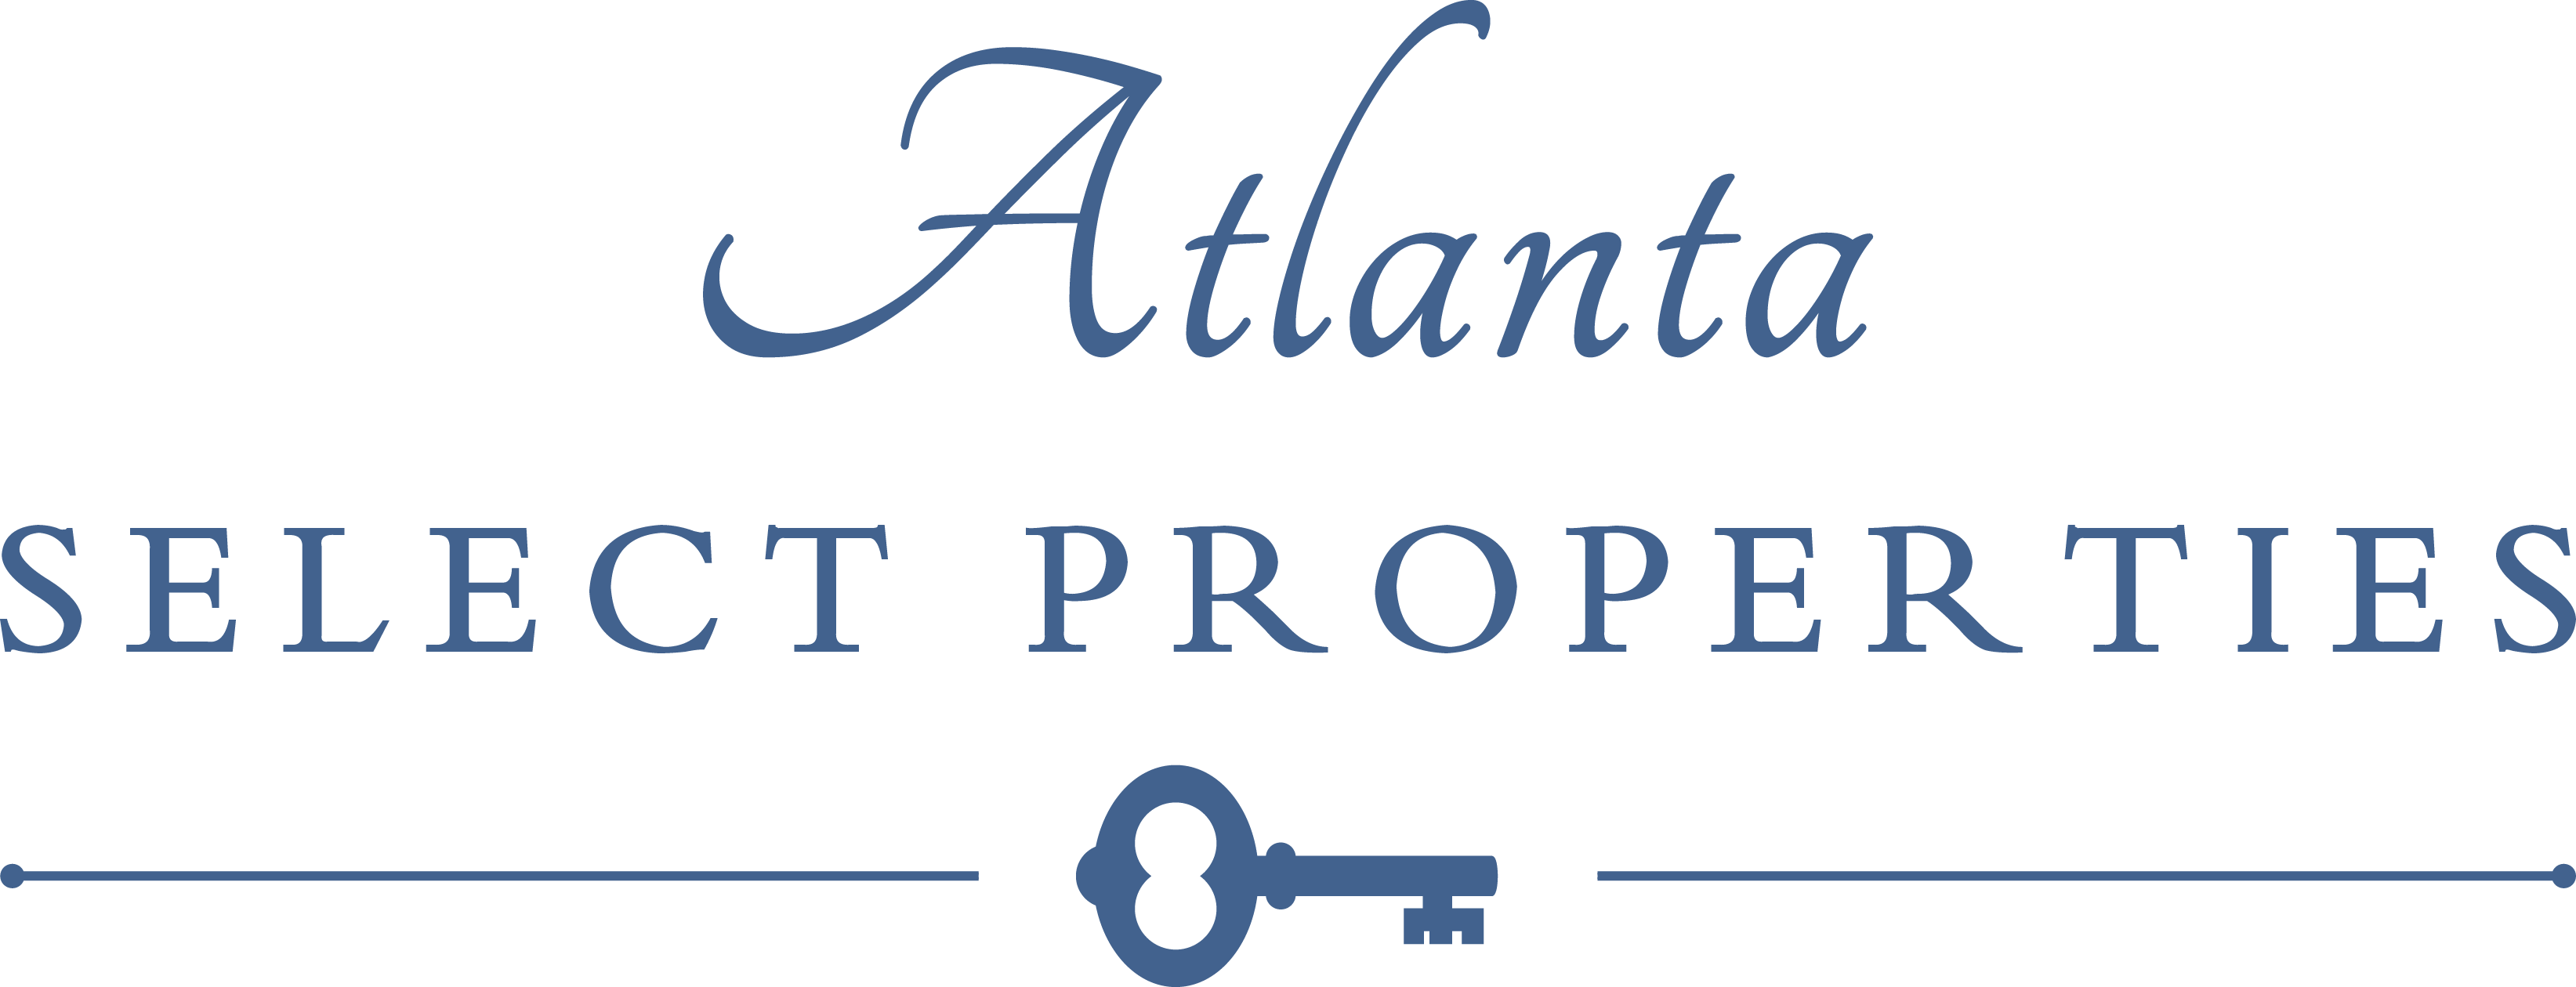 Atlanta Select Properties